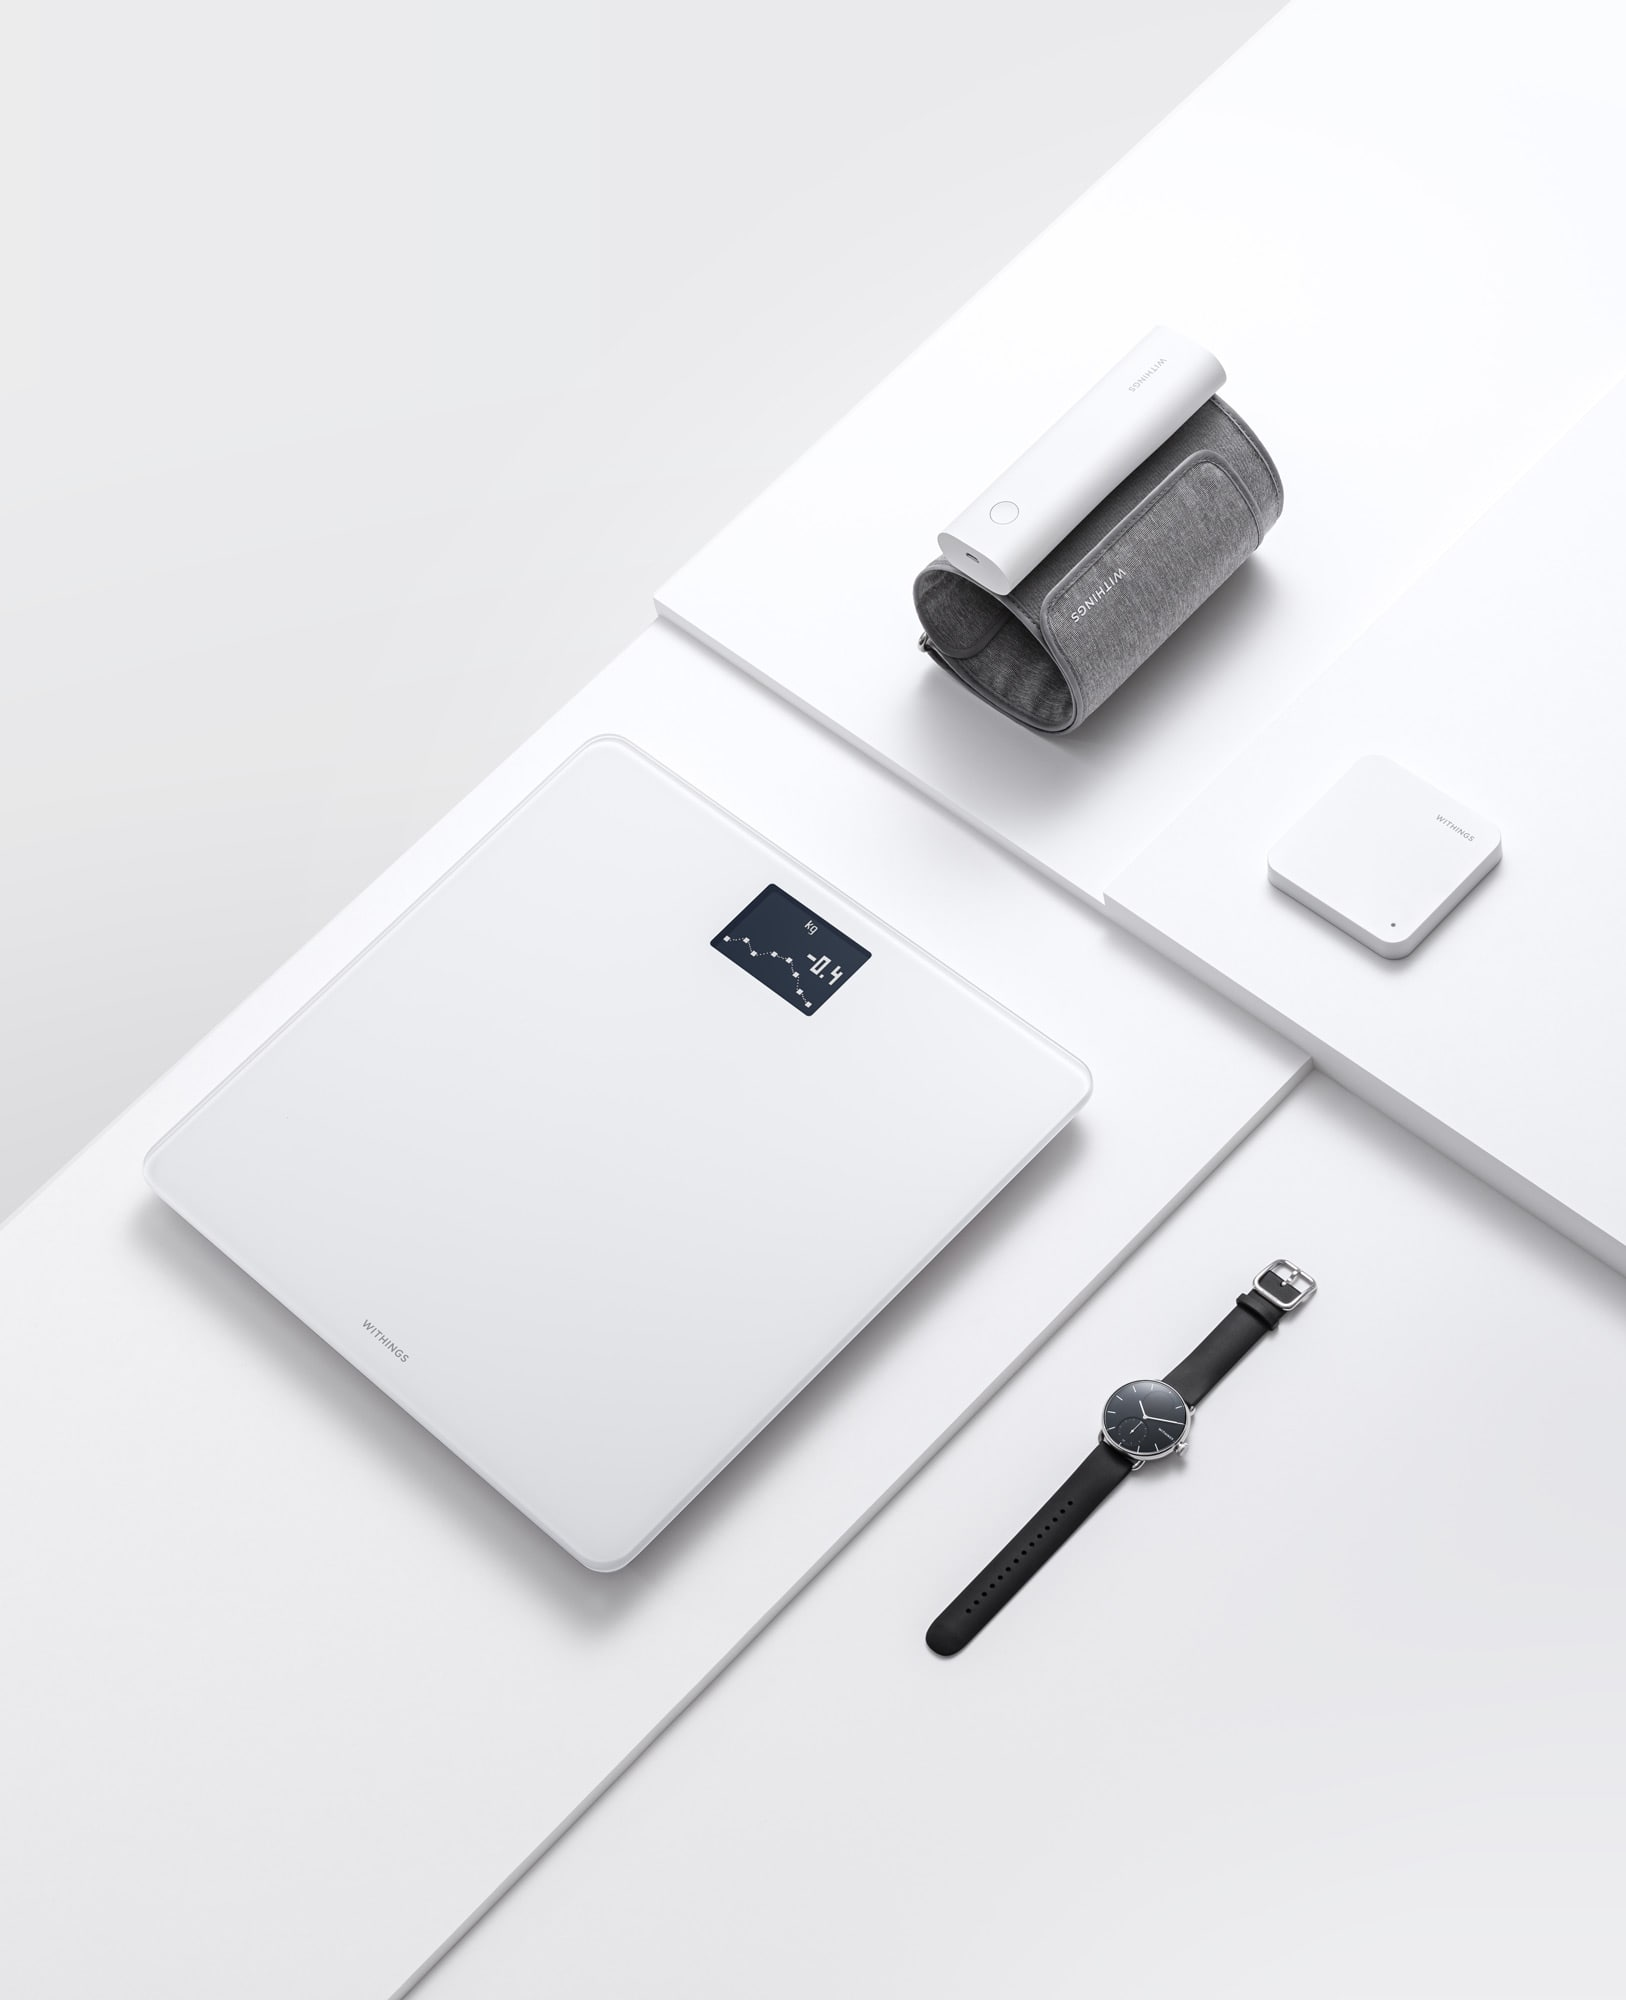 Withings | Med Pro Devices